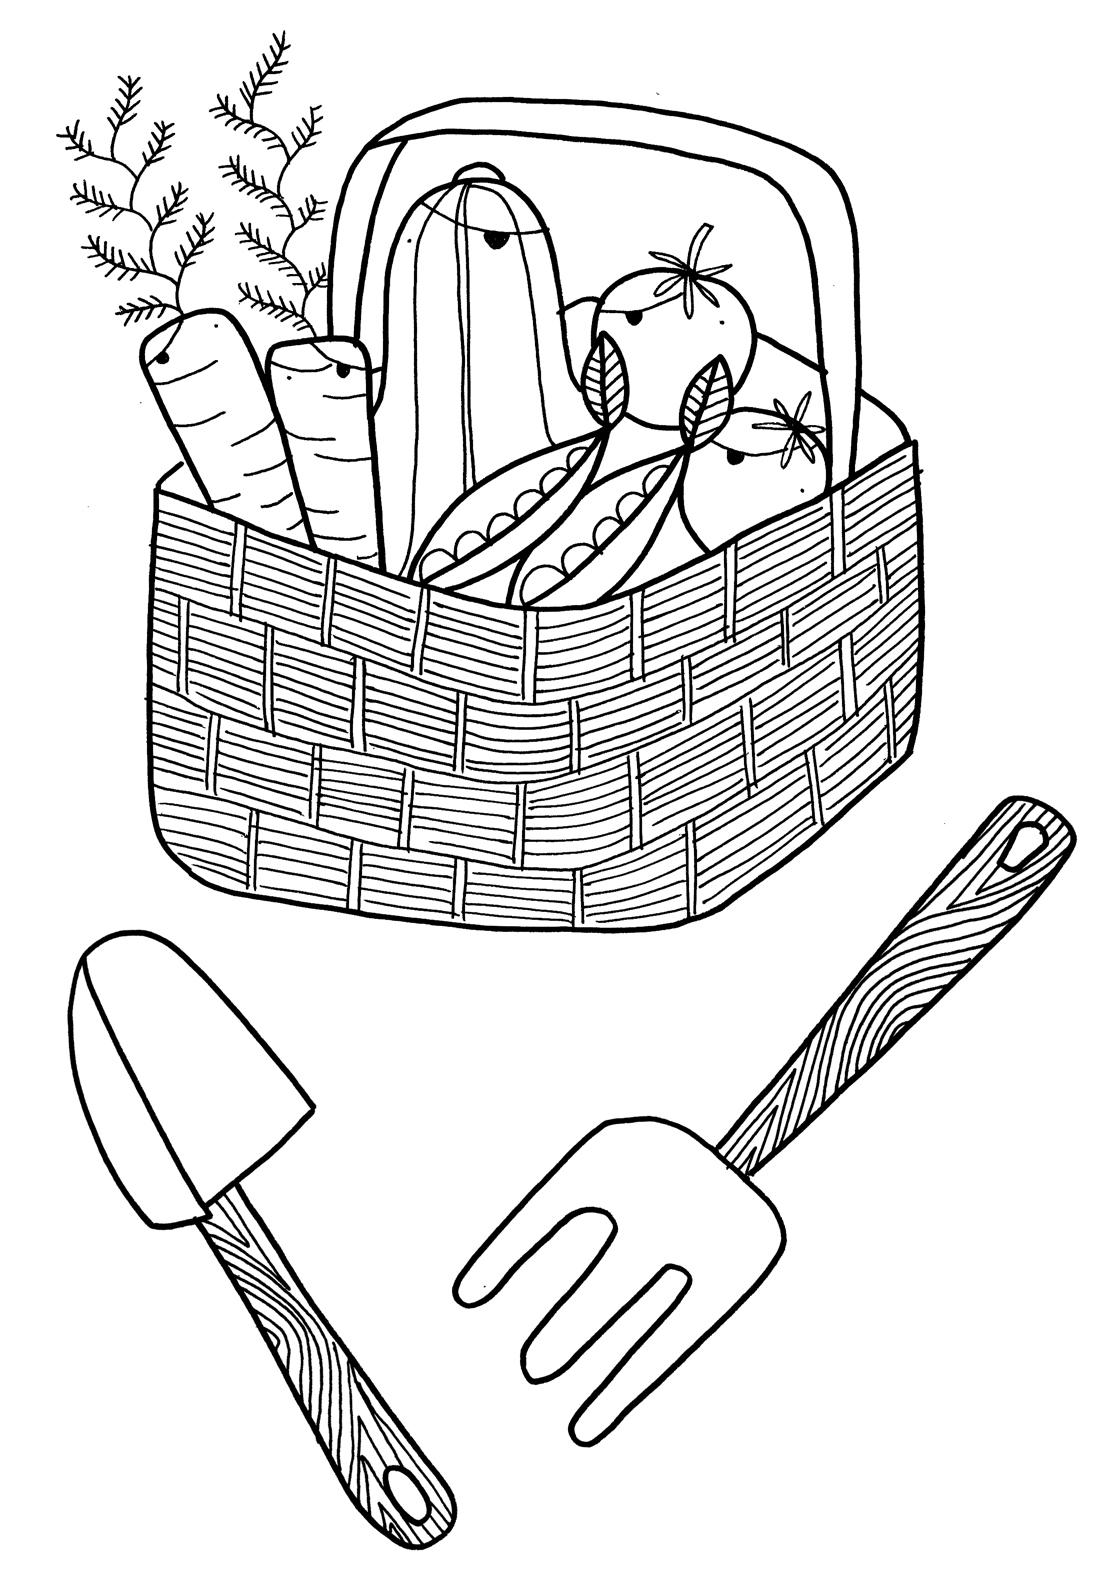 Image Result For When I Grow Up I Want To Be Coloring Pages